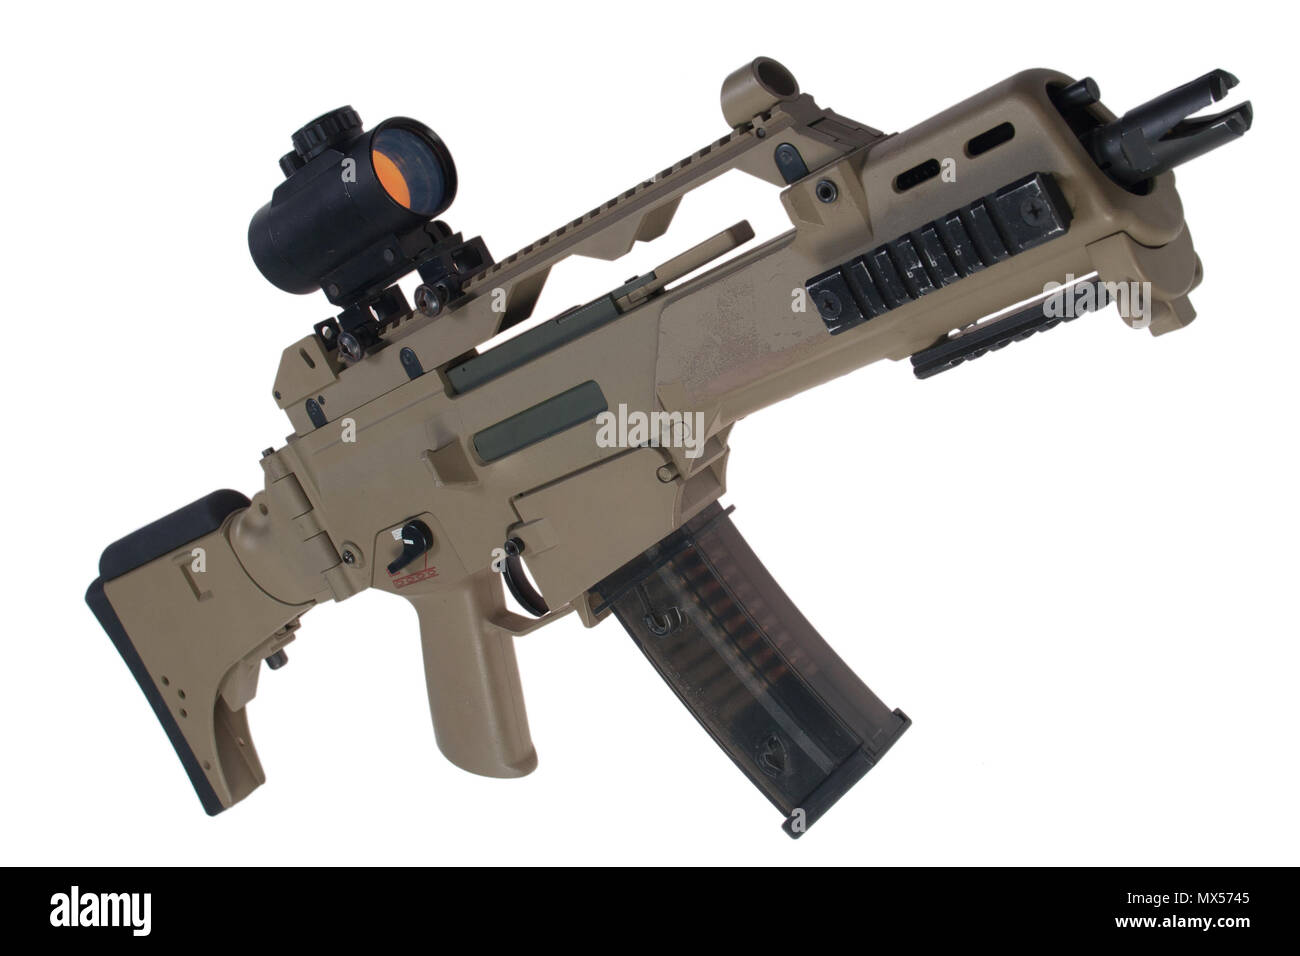 assault rifle G36 with scope - Stock Image